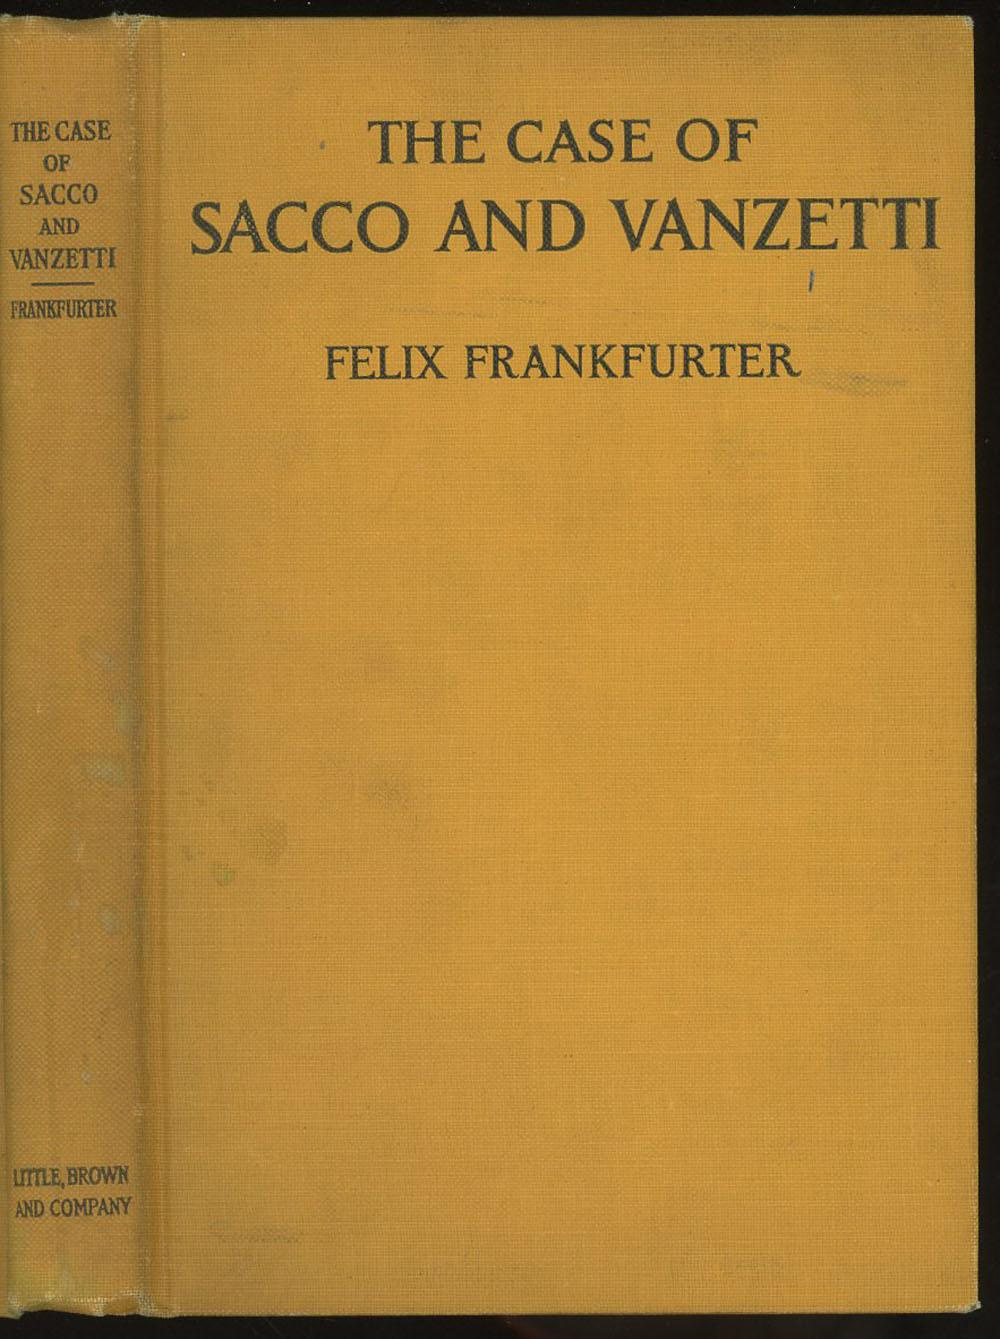 an analysis of the sacco and vanzetti court case persons involved in the slater and morrill shoe com S sacco and vanzetti case the sacco and vanzetti case is widely regarded as a miscarriage of justice in american legal history nicola sacco and bartolomeo vanzetti, italian immi.